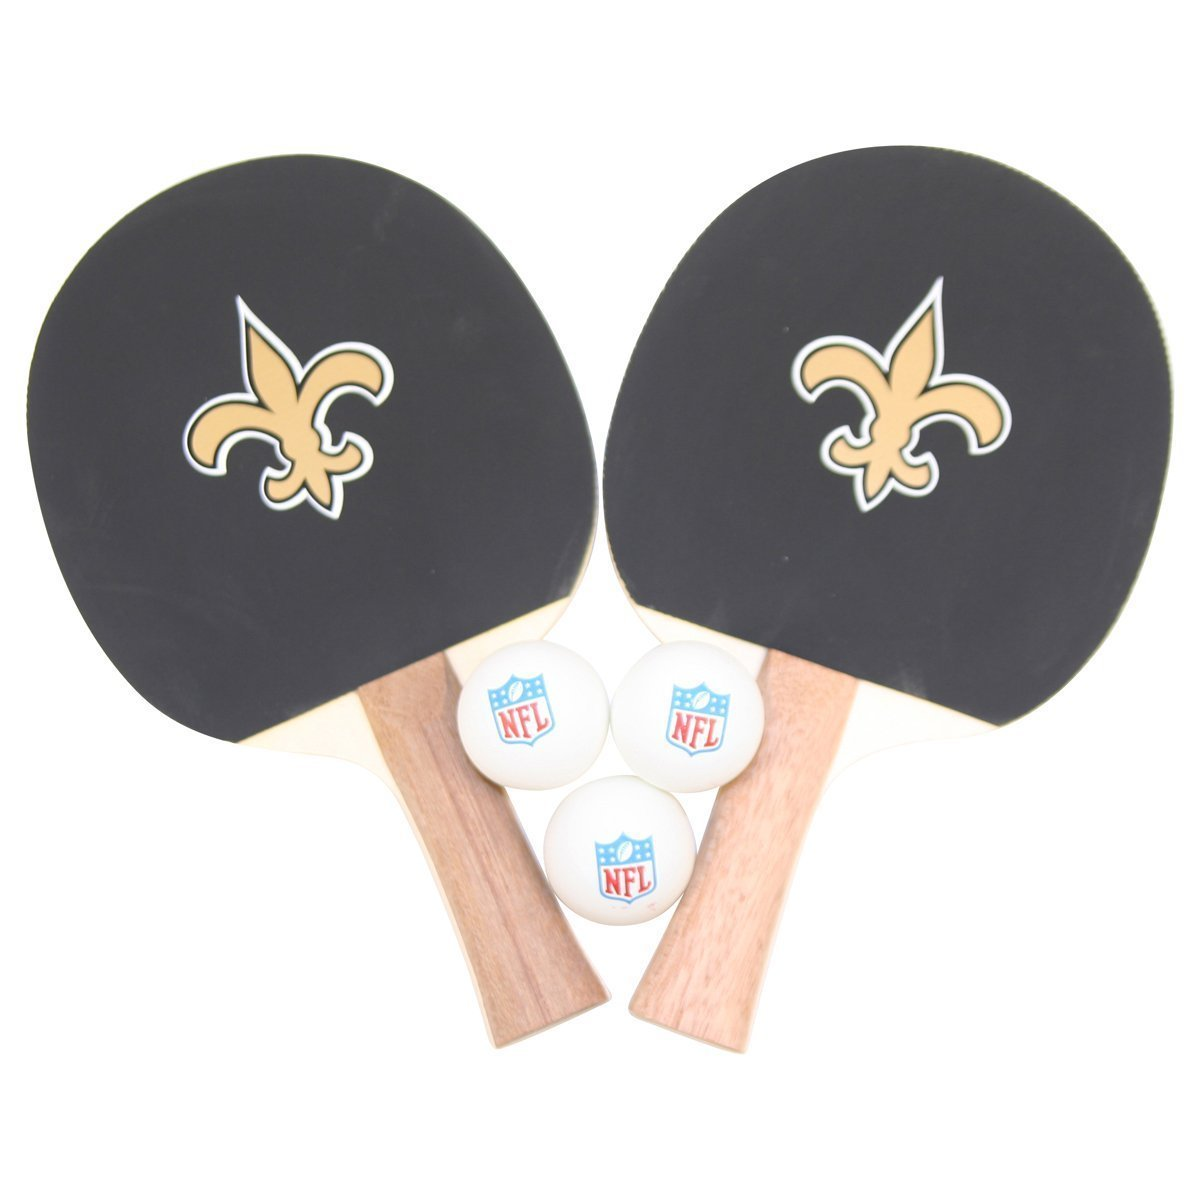 New Orleans Saints NFL Ping Pong Paddle and Ball Set (2 Paddles and 3 Balls)